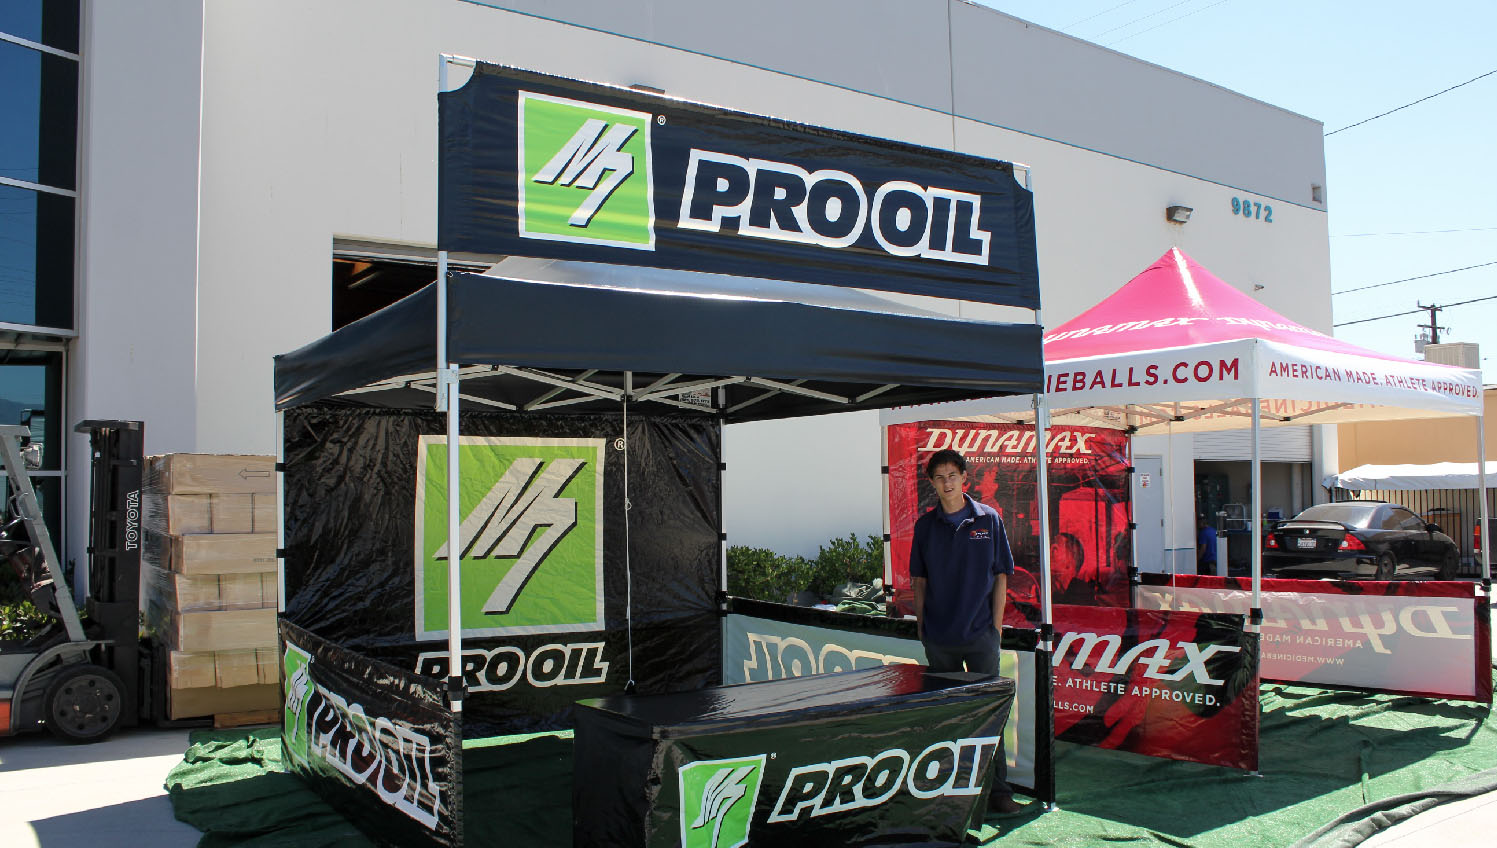 Tent banner on top of a 10x10 canopy with personalized branding for marketing purposes